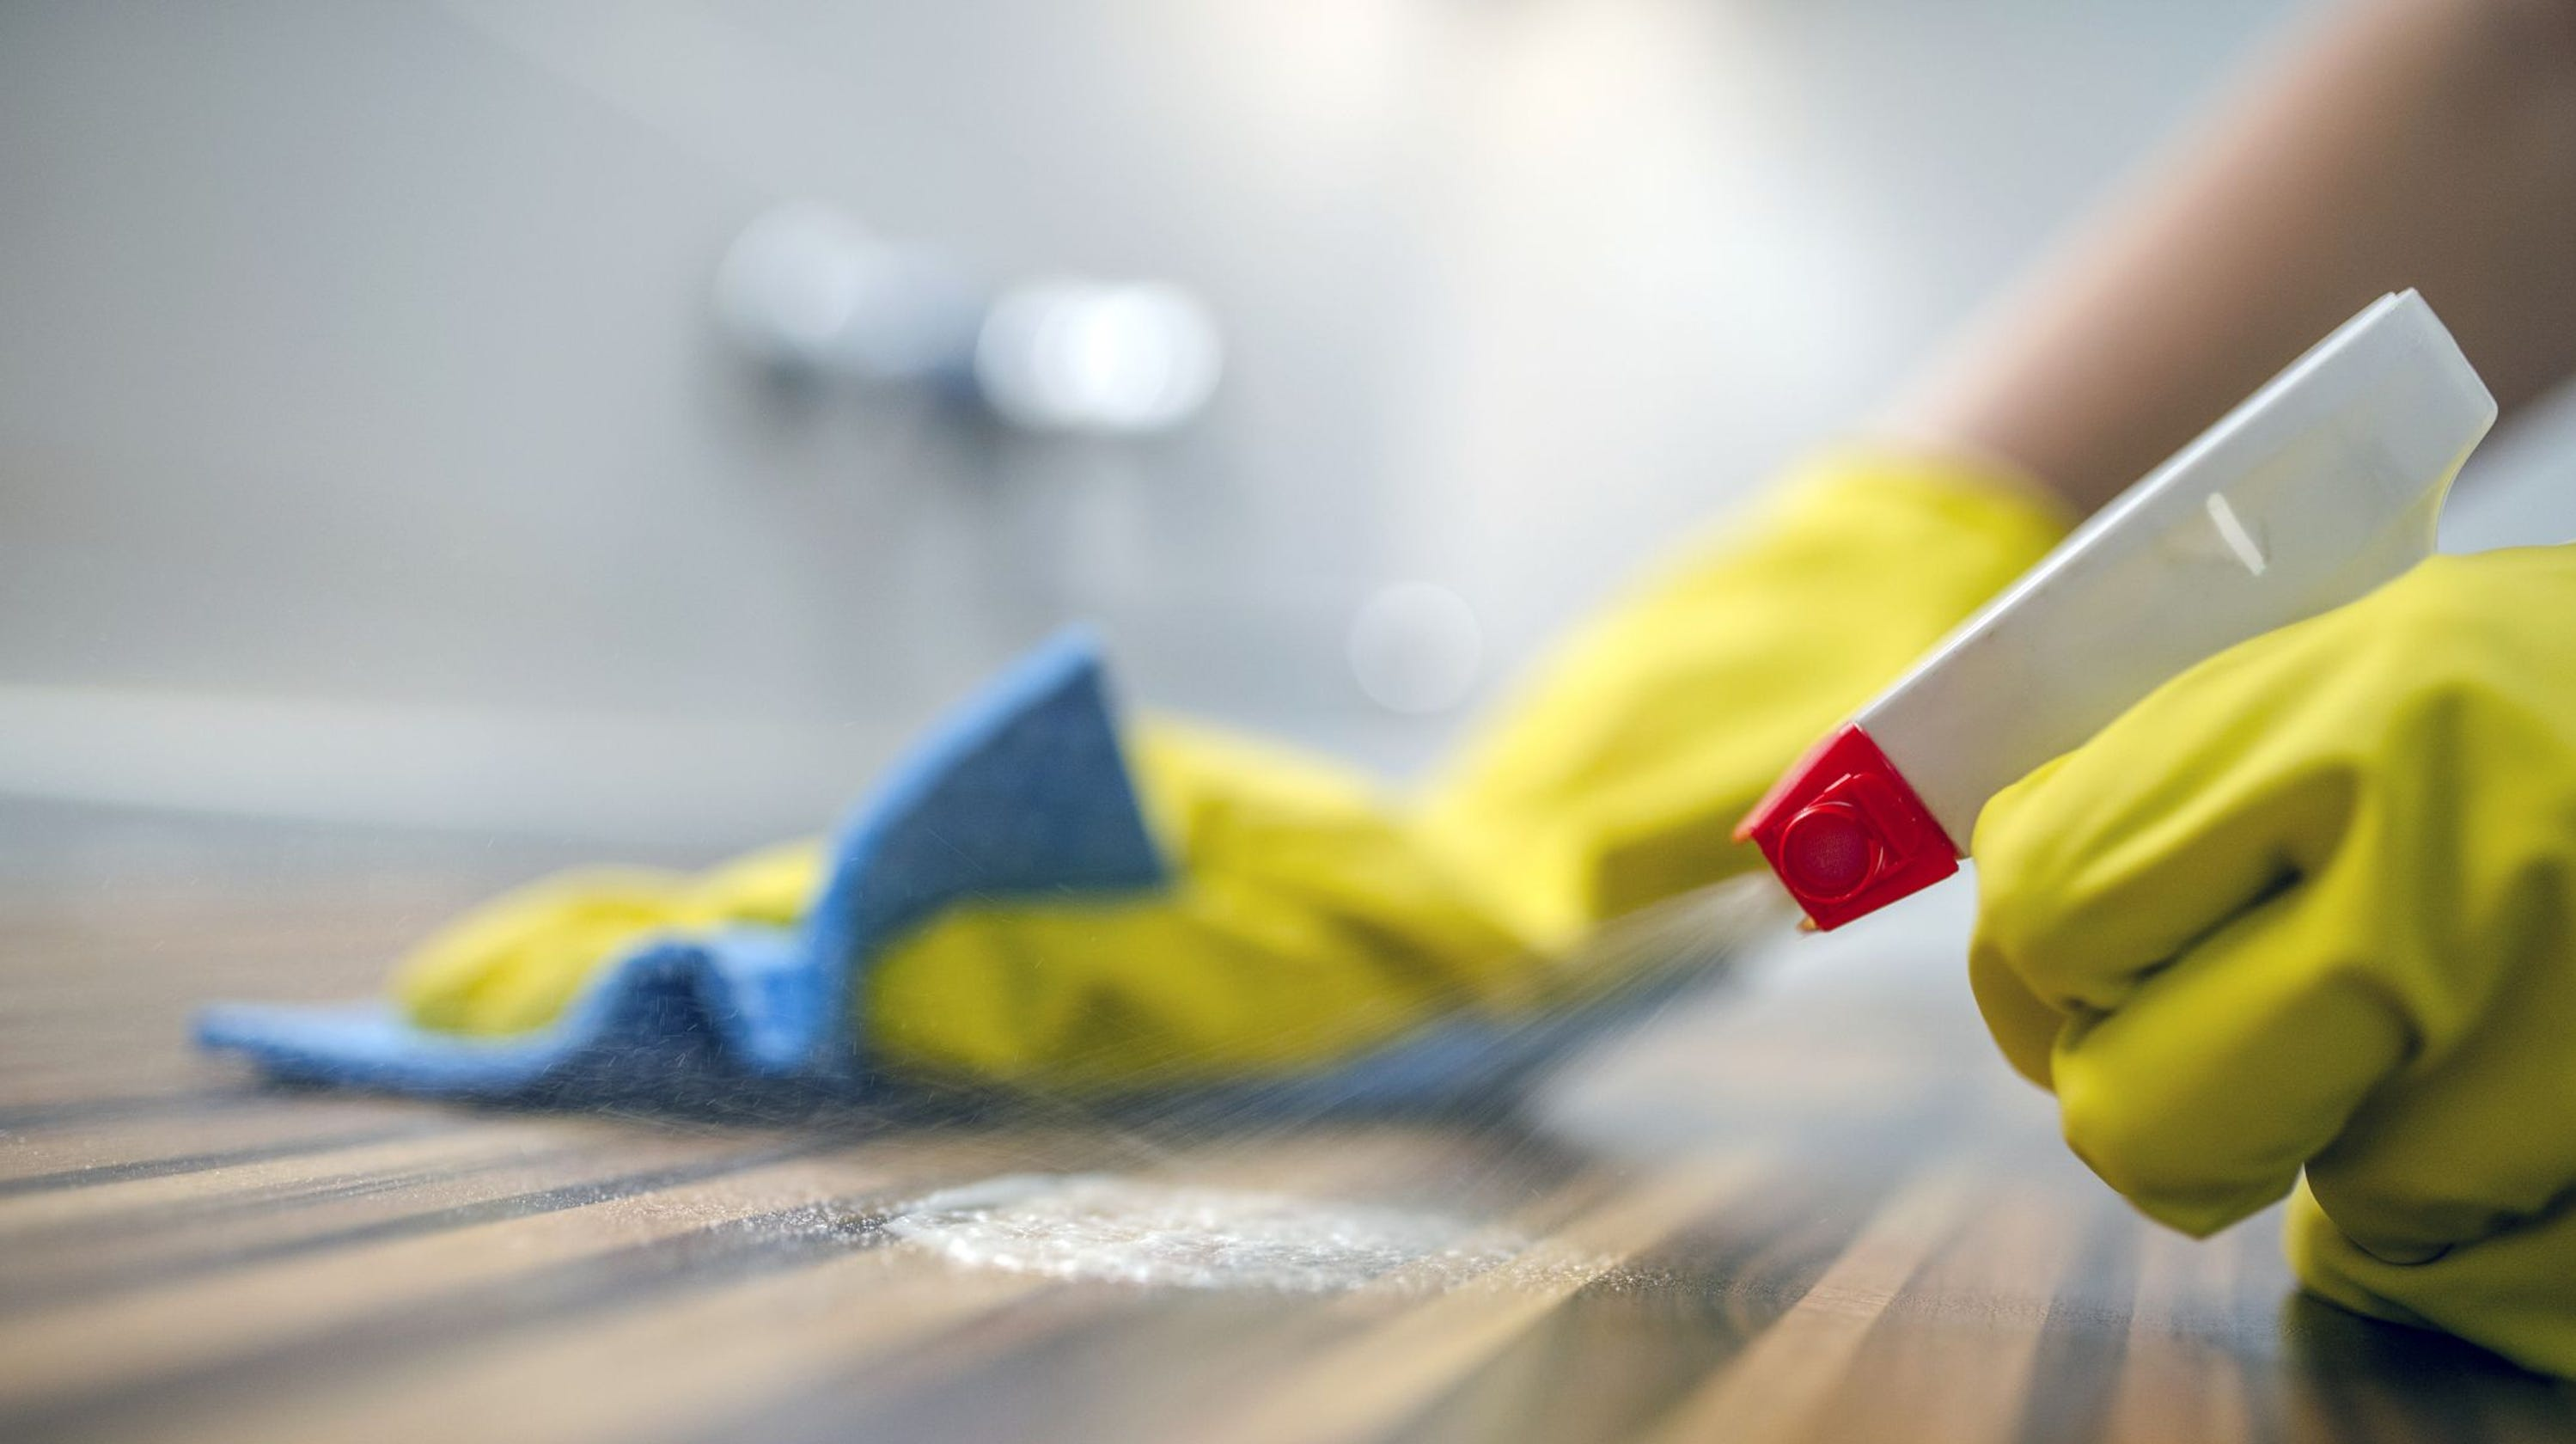 Household Disinfectants Could Be Making >> Household disinfectants could be making your kids fat, study says